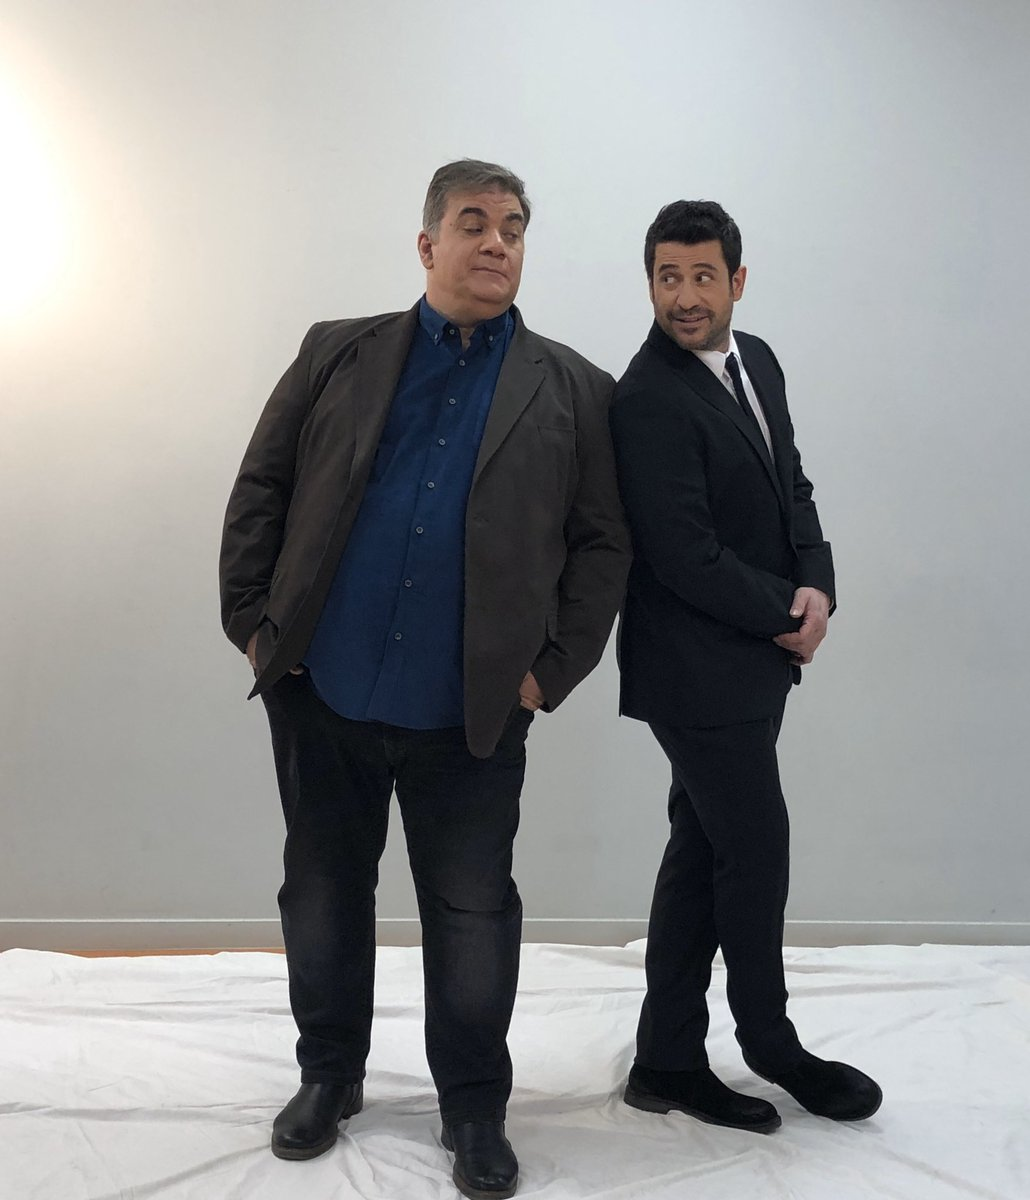 Alexis Georgoulis Georgoulisalexi Twitter On the itv show he plays spiro, a close friend and taxi driver for the durrell family, while keeley plays matriarch louisa. alexis georgoulis georgoulisalexi